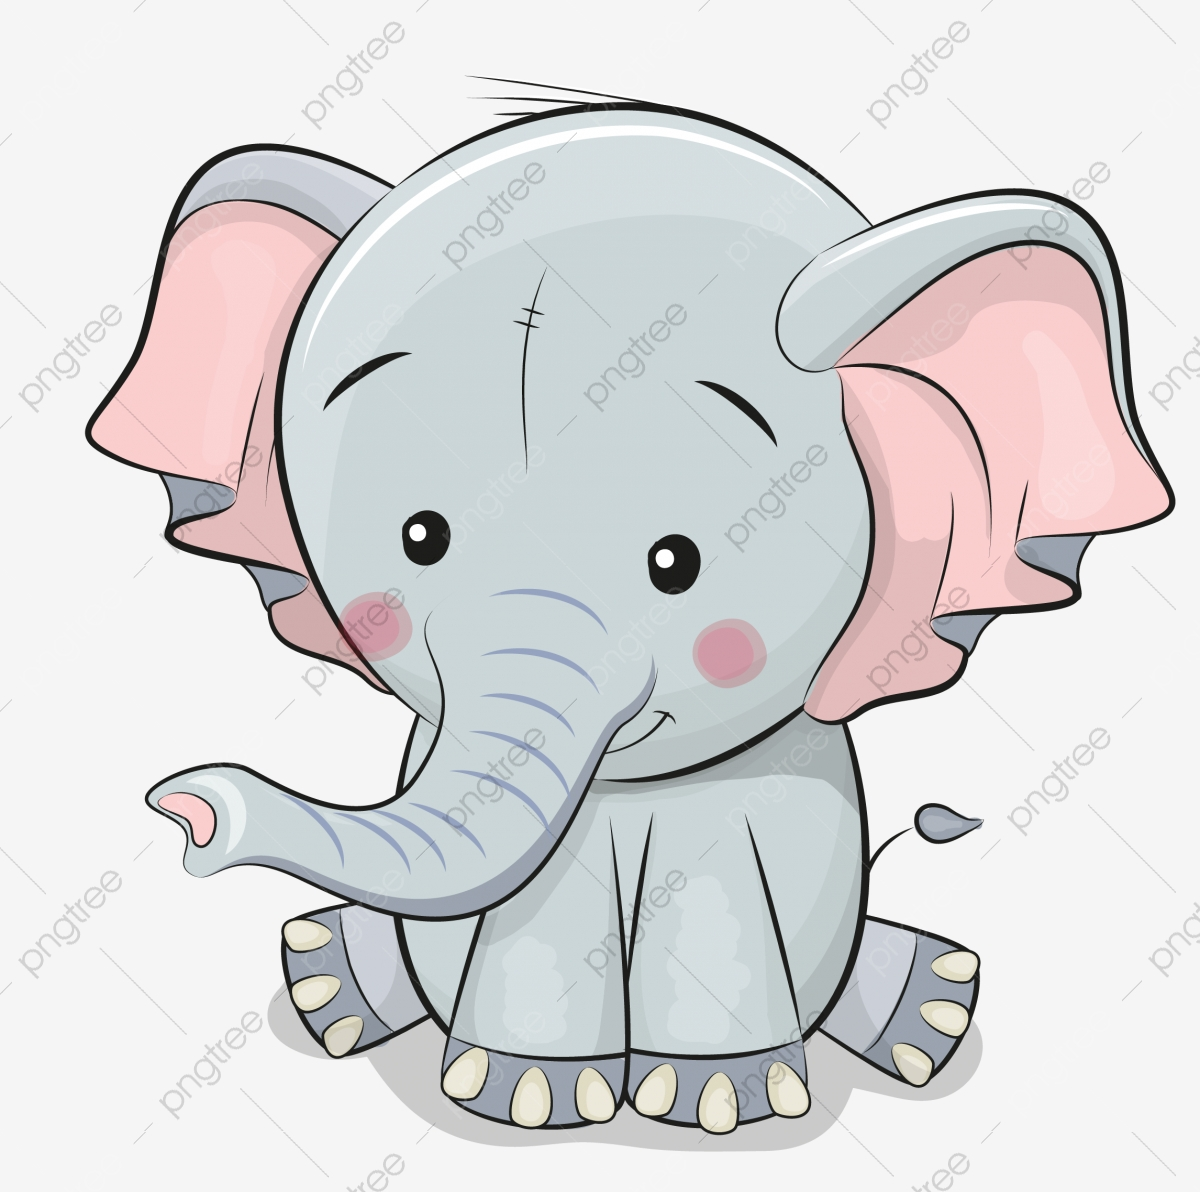 Elephant Side View Elephant Clipart Animal Giant Png